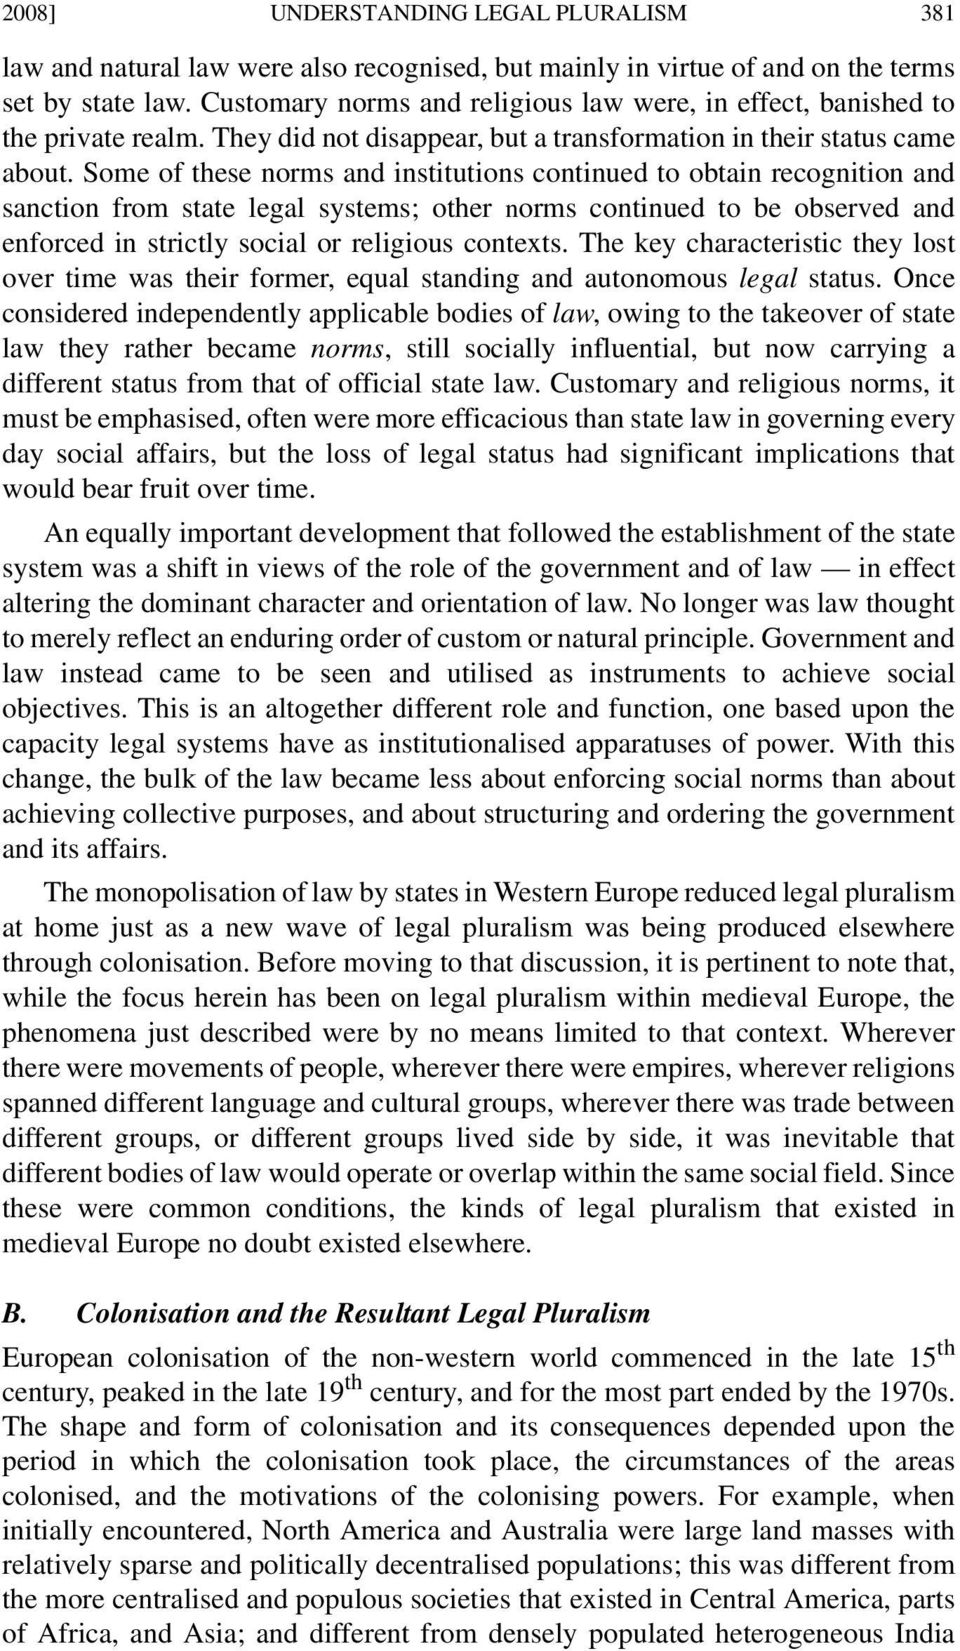 Some of these norms and institutions continued to obtain recognition and sanction from state legal systems; other norms continued to be observed and enforced in strictly social or religious contexts.